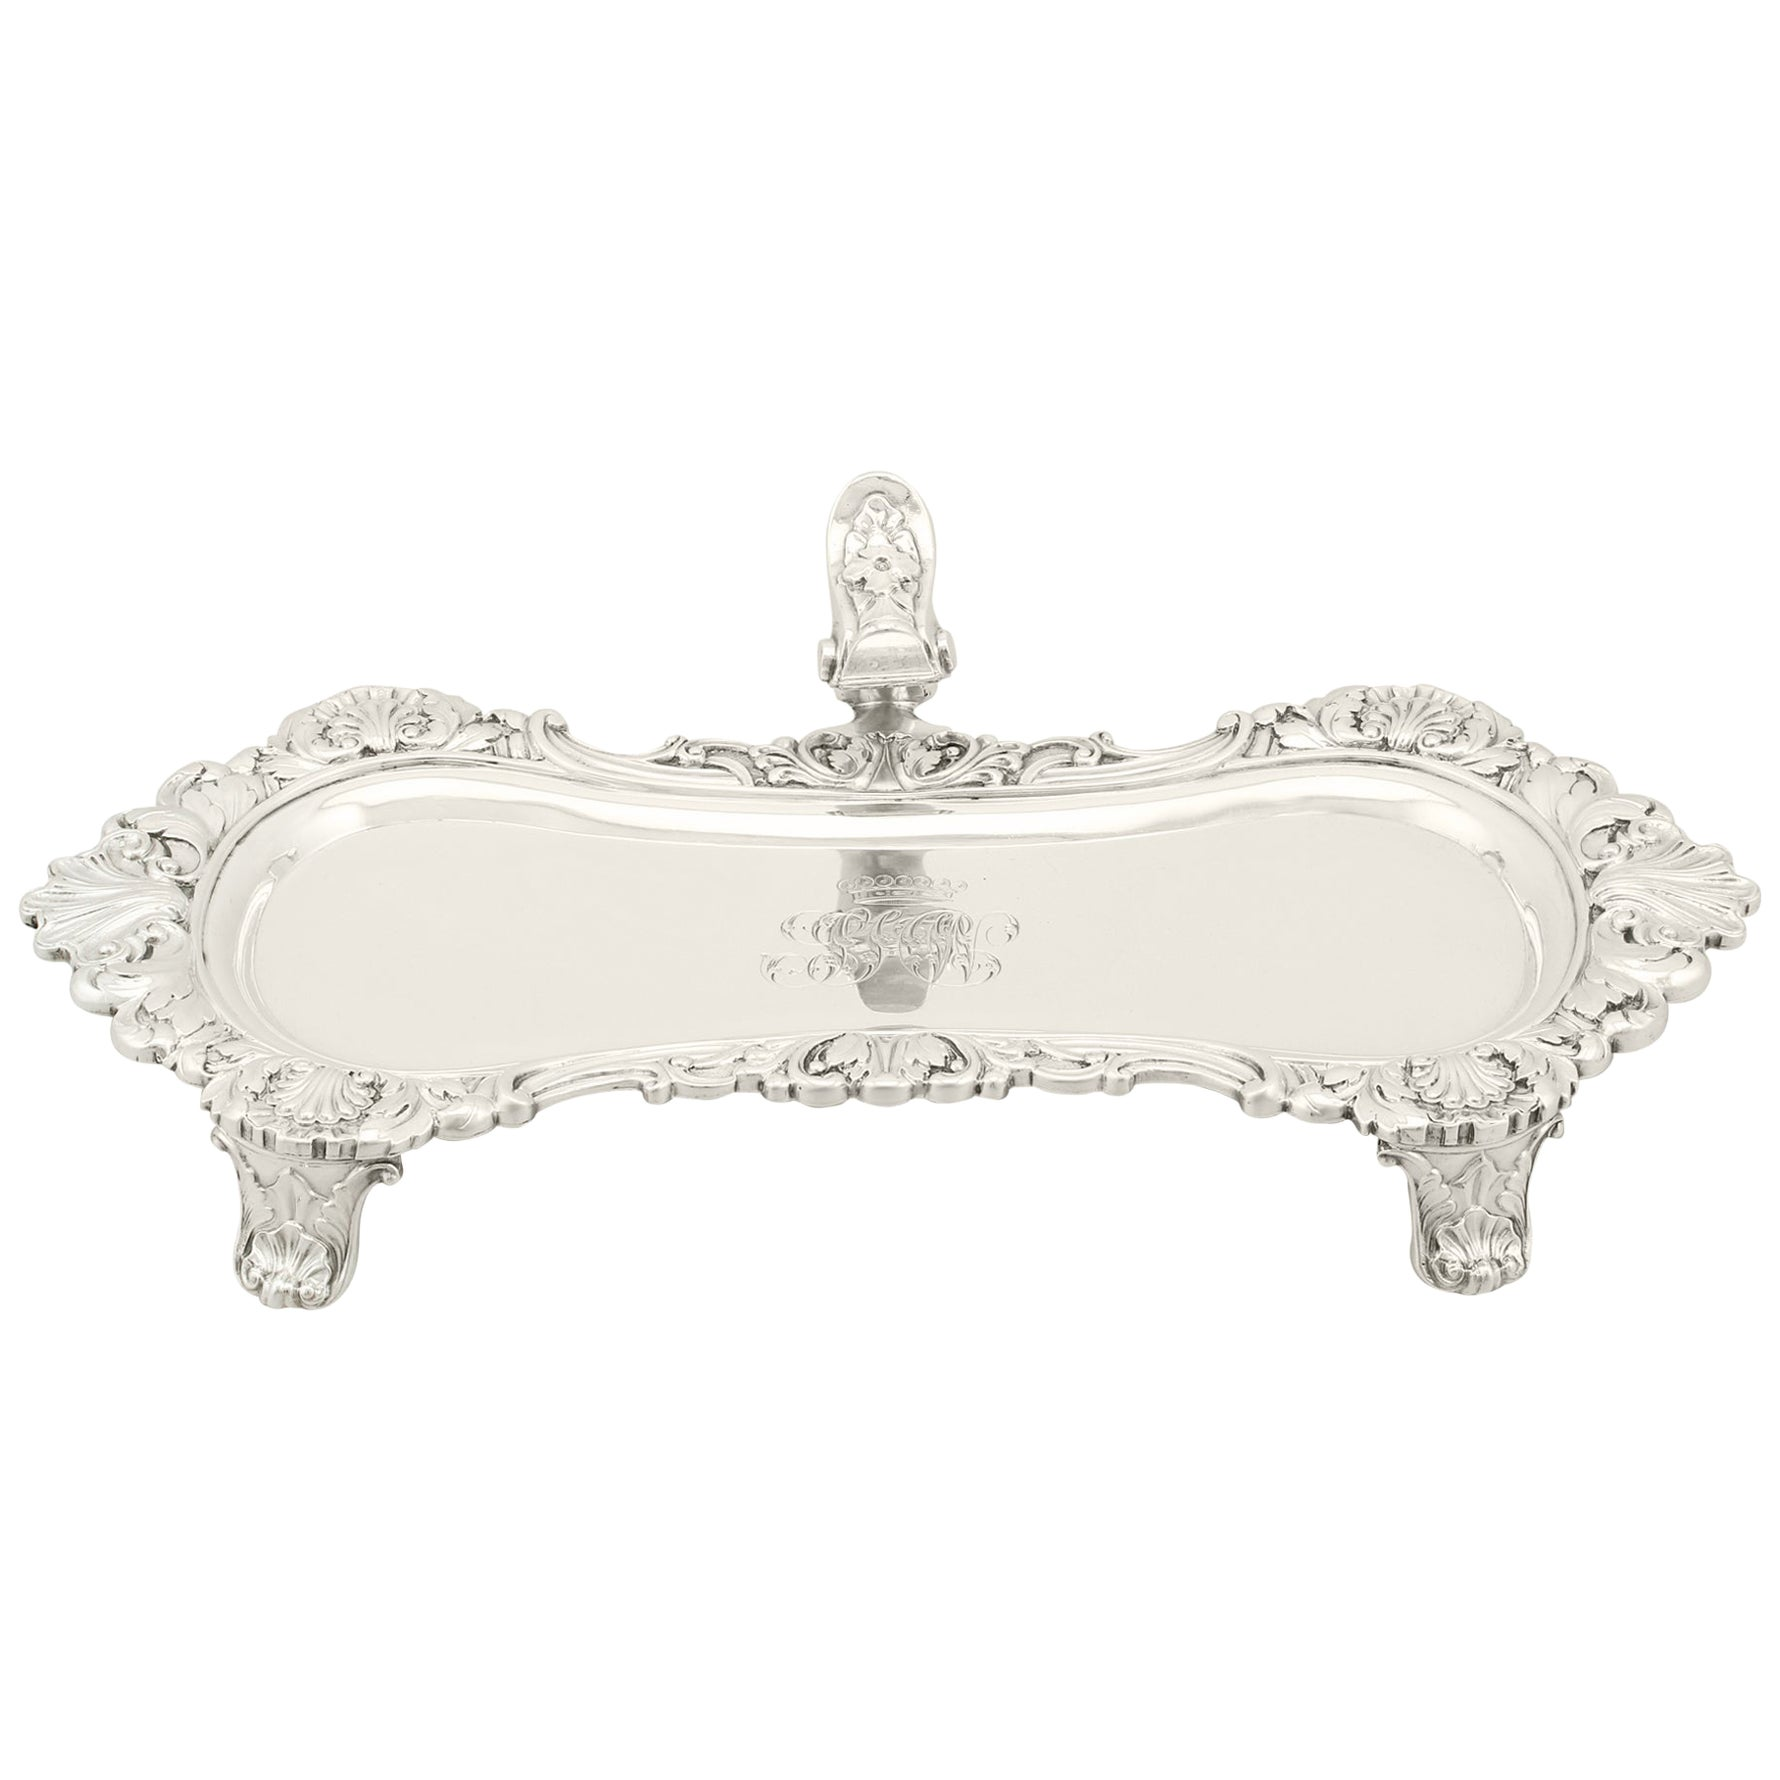 1924 Antique Sterling Silver Snuffer Tray by William Stroud